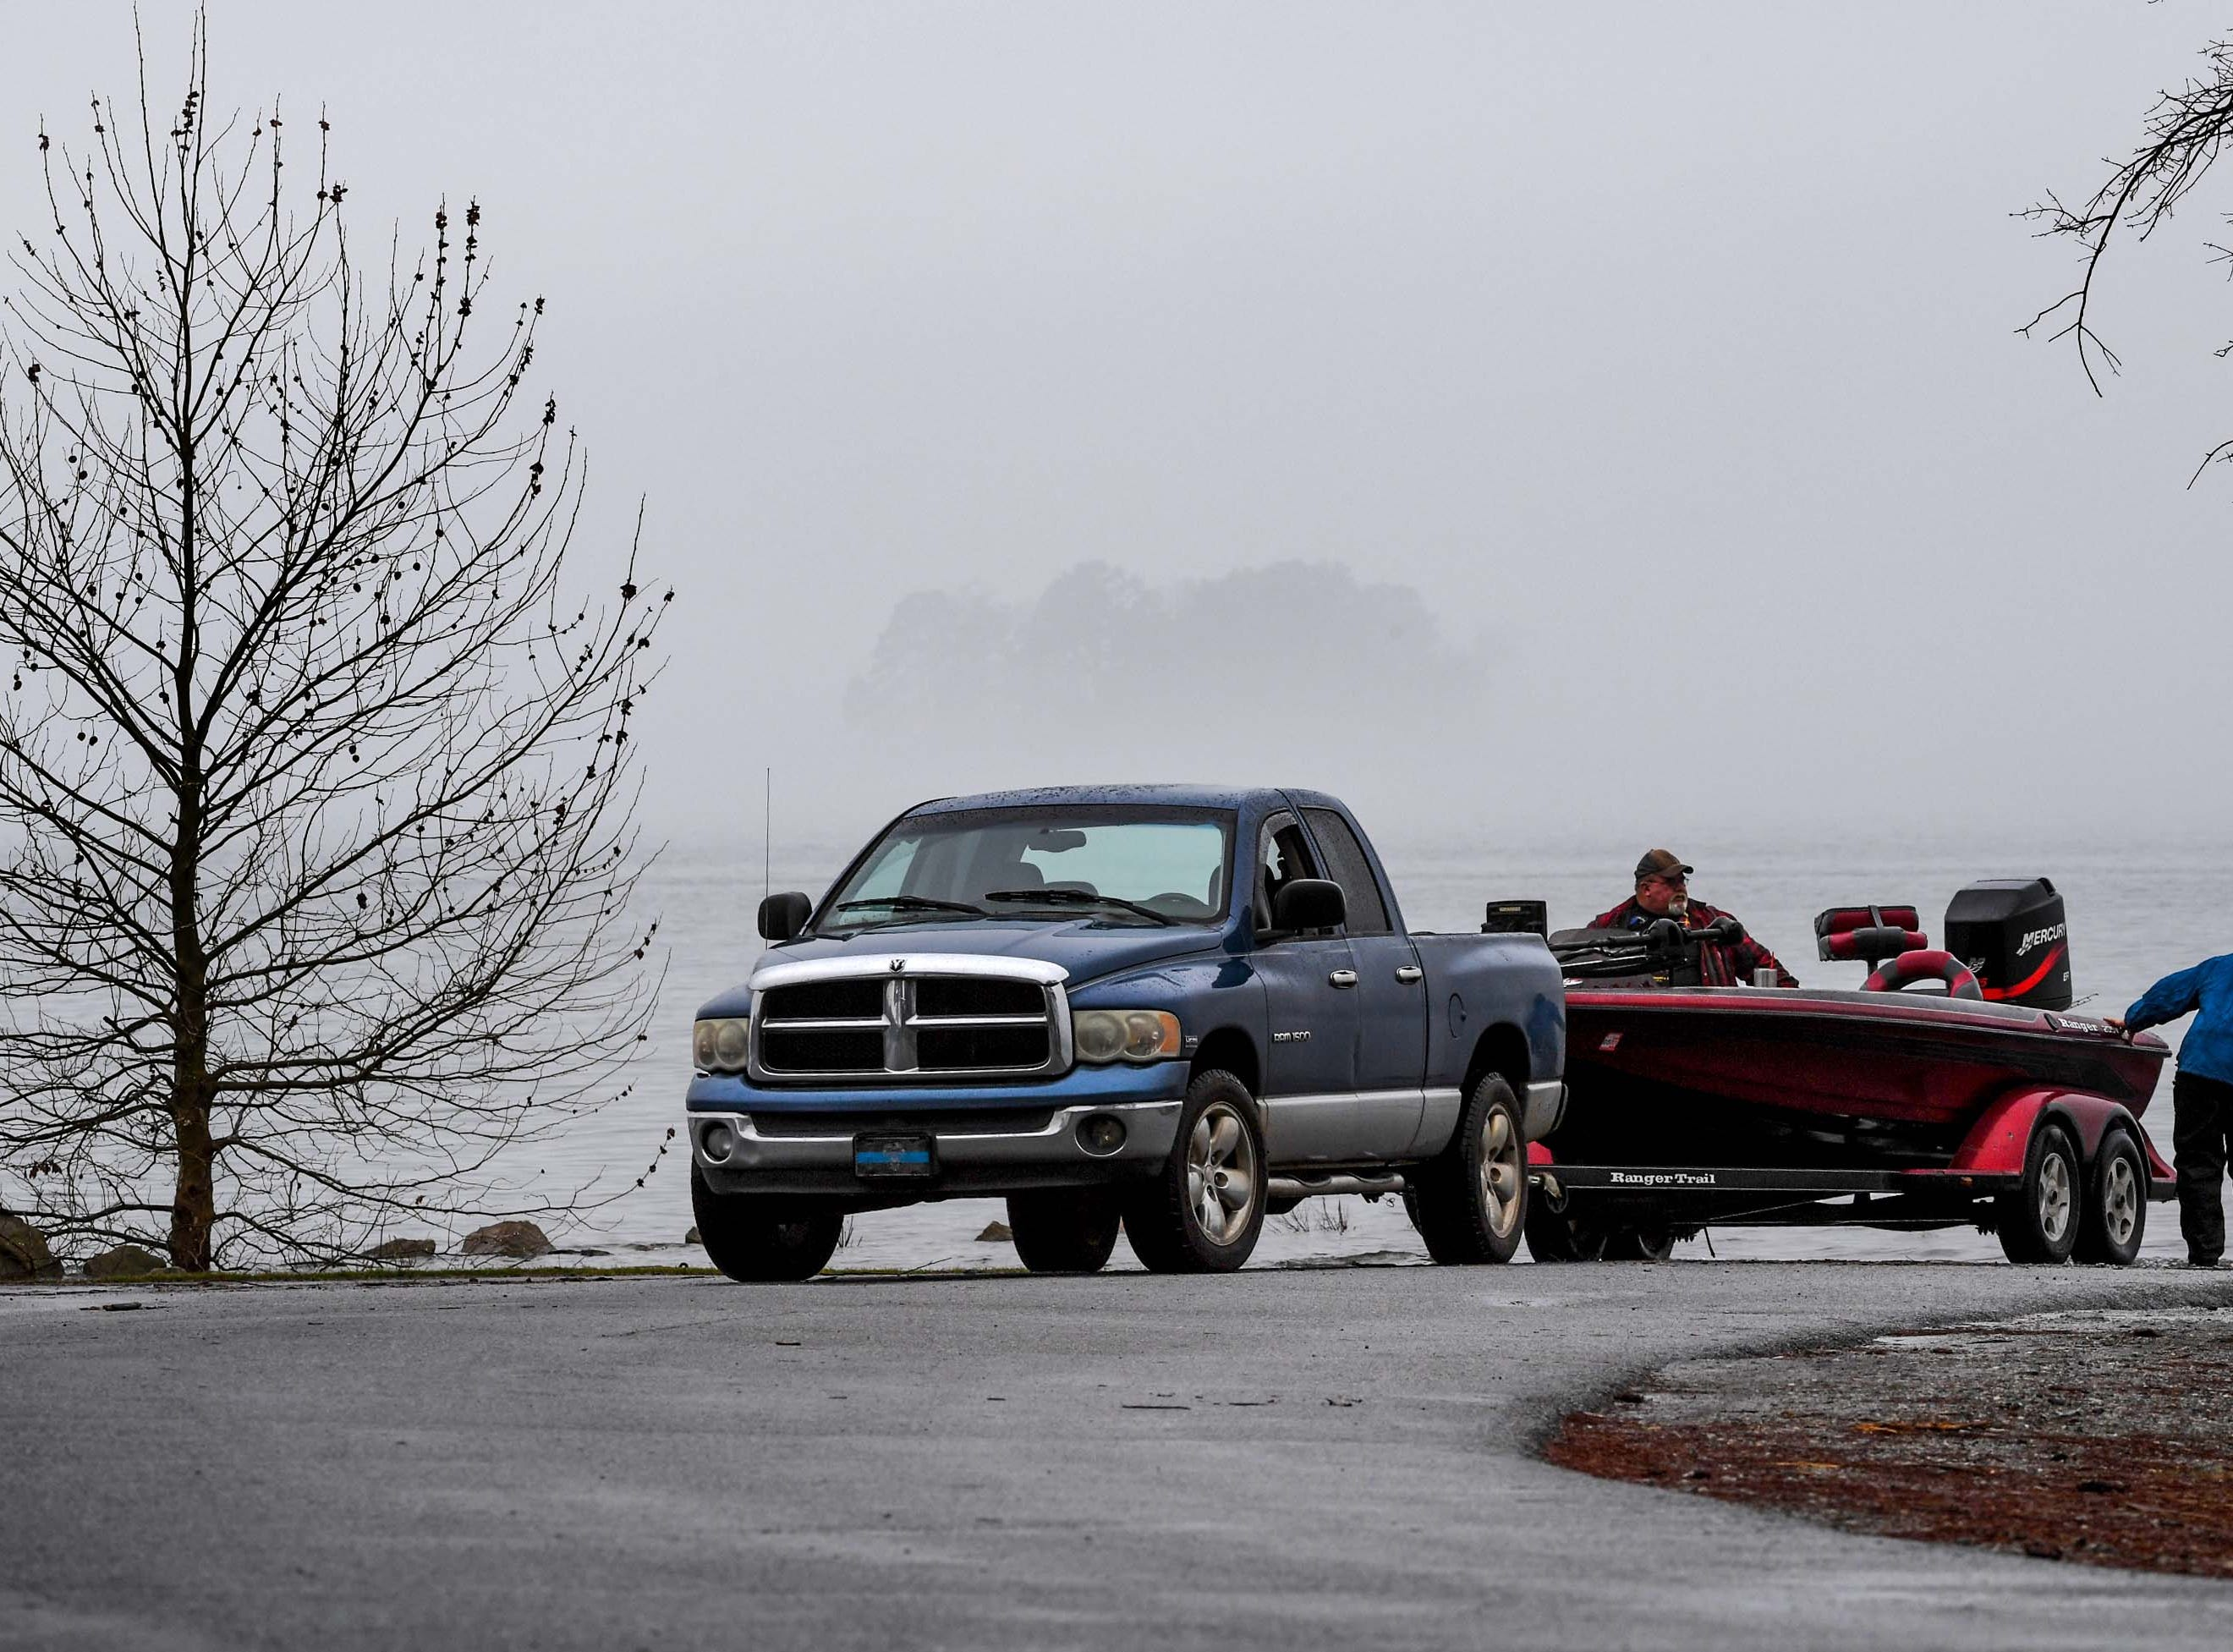 Vernon Reynolds, 15, right, of North Augusta High School Fishing Team checks the boat he would ride at practice for the Mossy Oak Fishing Bassmaster High School Open at the Green Pond Boat Landing on Hartwell Lake in Anderson Friday. The official event, with 87 schools from 15 states, starts at the boat landing at 6:45 a.m. Saturday morning.